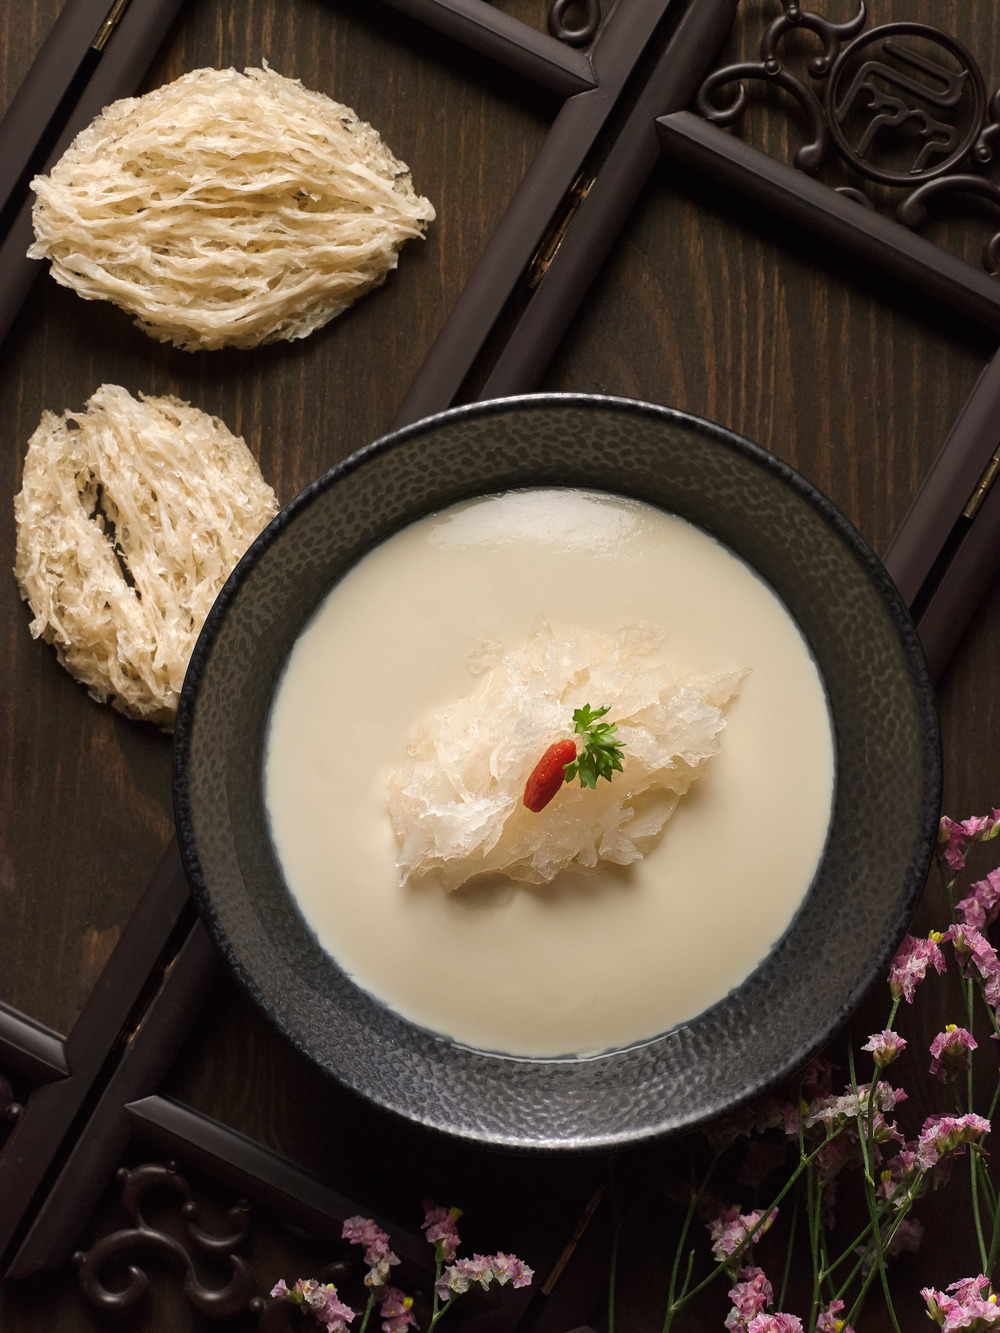 Chilled Homemade Bean Curd with Bird's Nest | Photo Credit: Pan Pacific Singapore